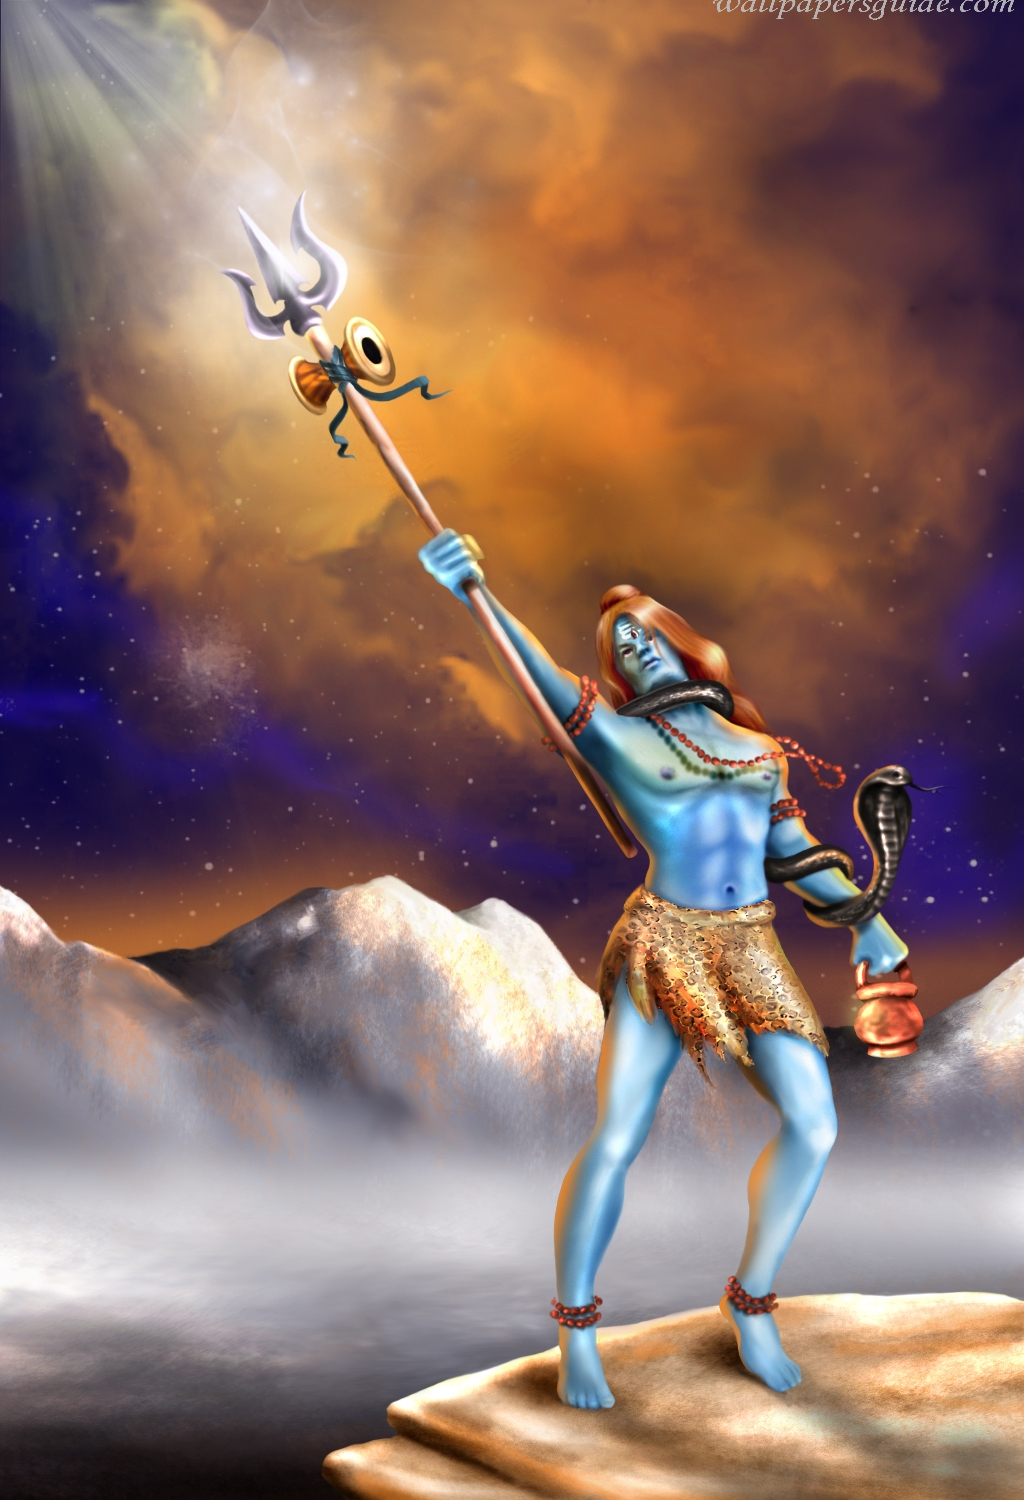 Lord Shiva Angry Wallpapers High Resolution | www.imgkid ...